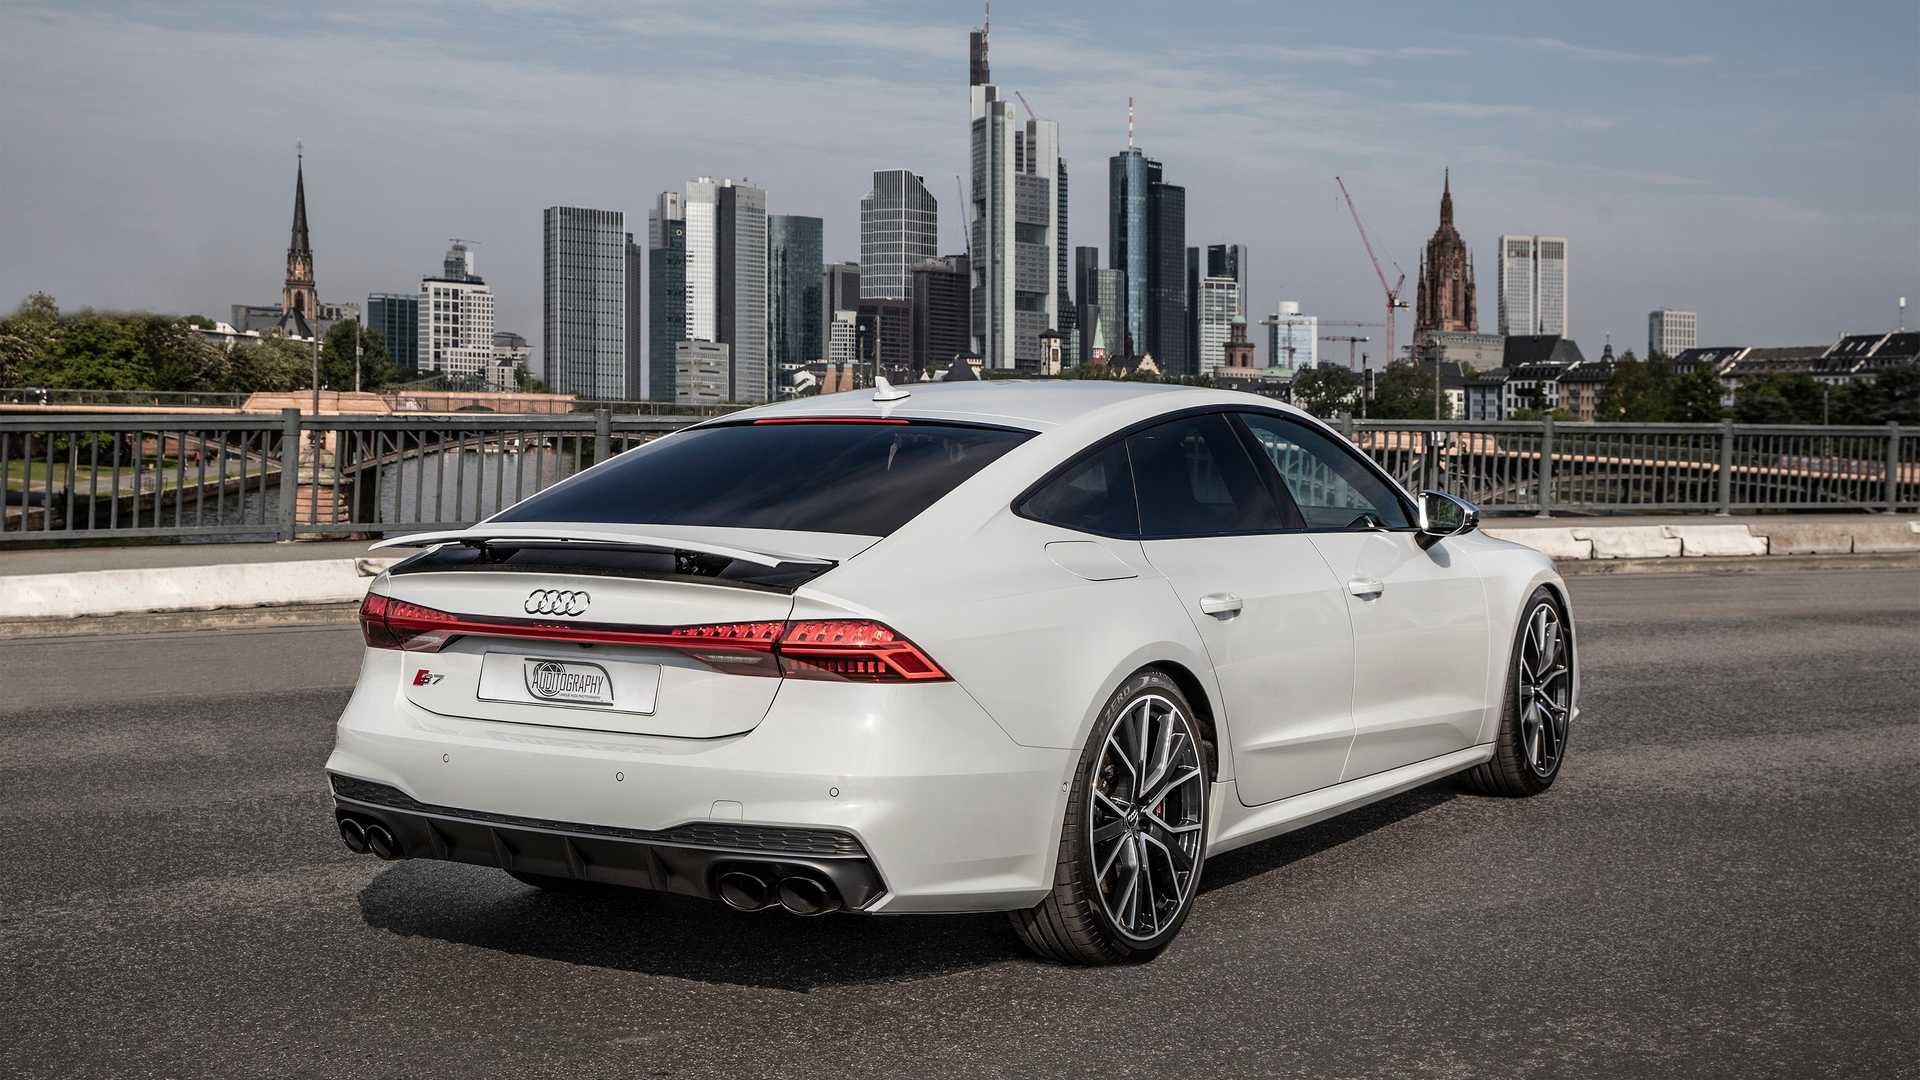 60 New Audi A7 2020 Pricing for Audi A7 2020